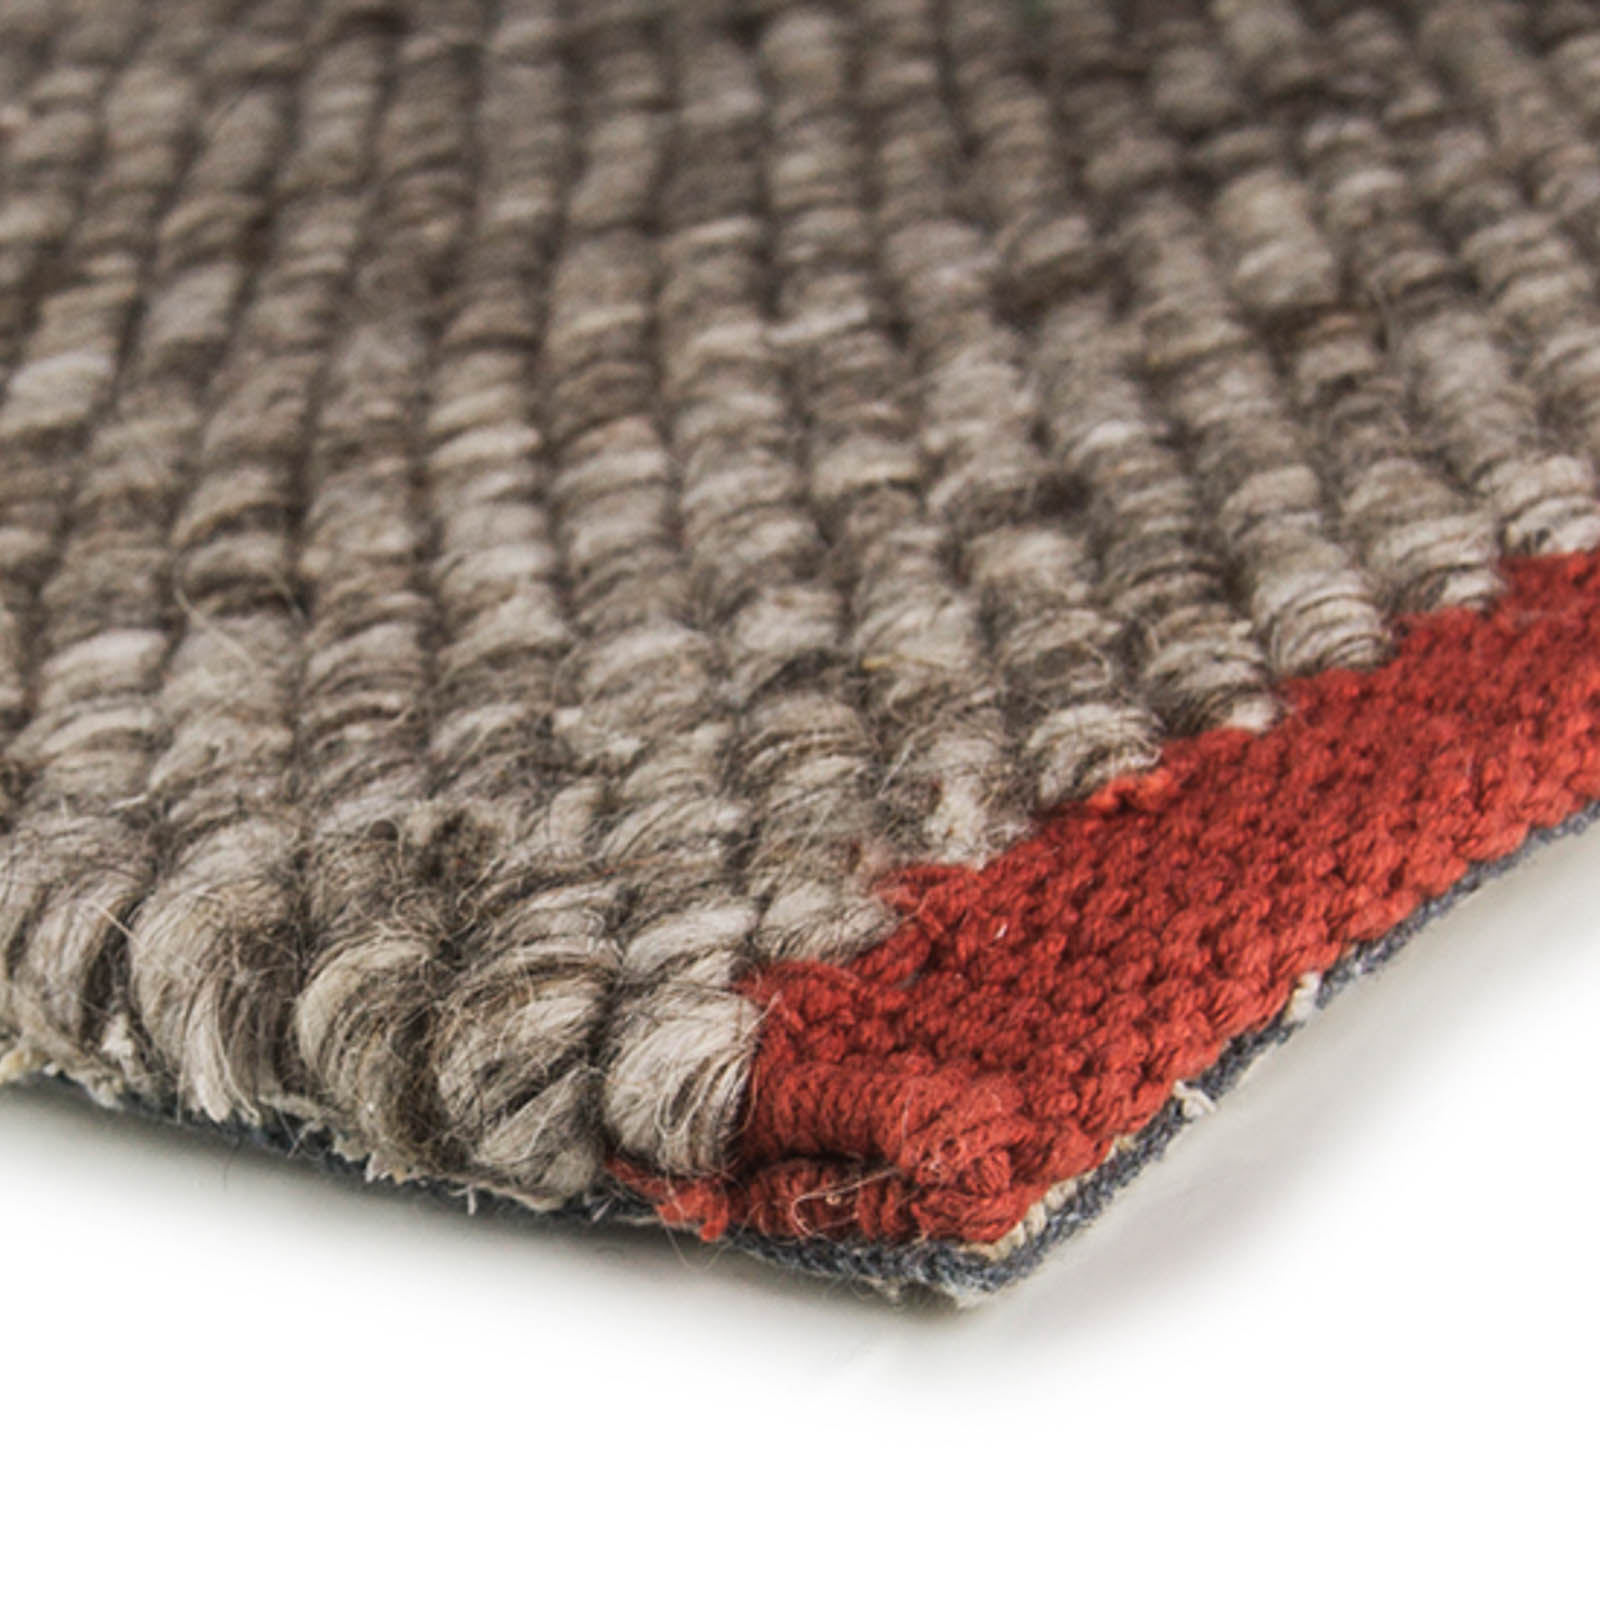 Newton Rugs 15223 in Terracotta